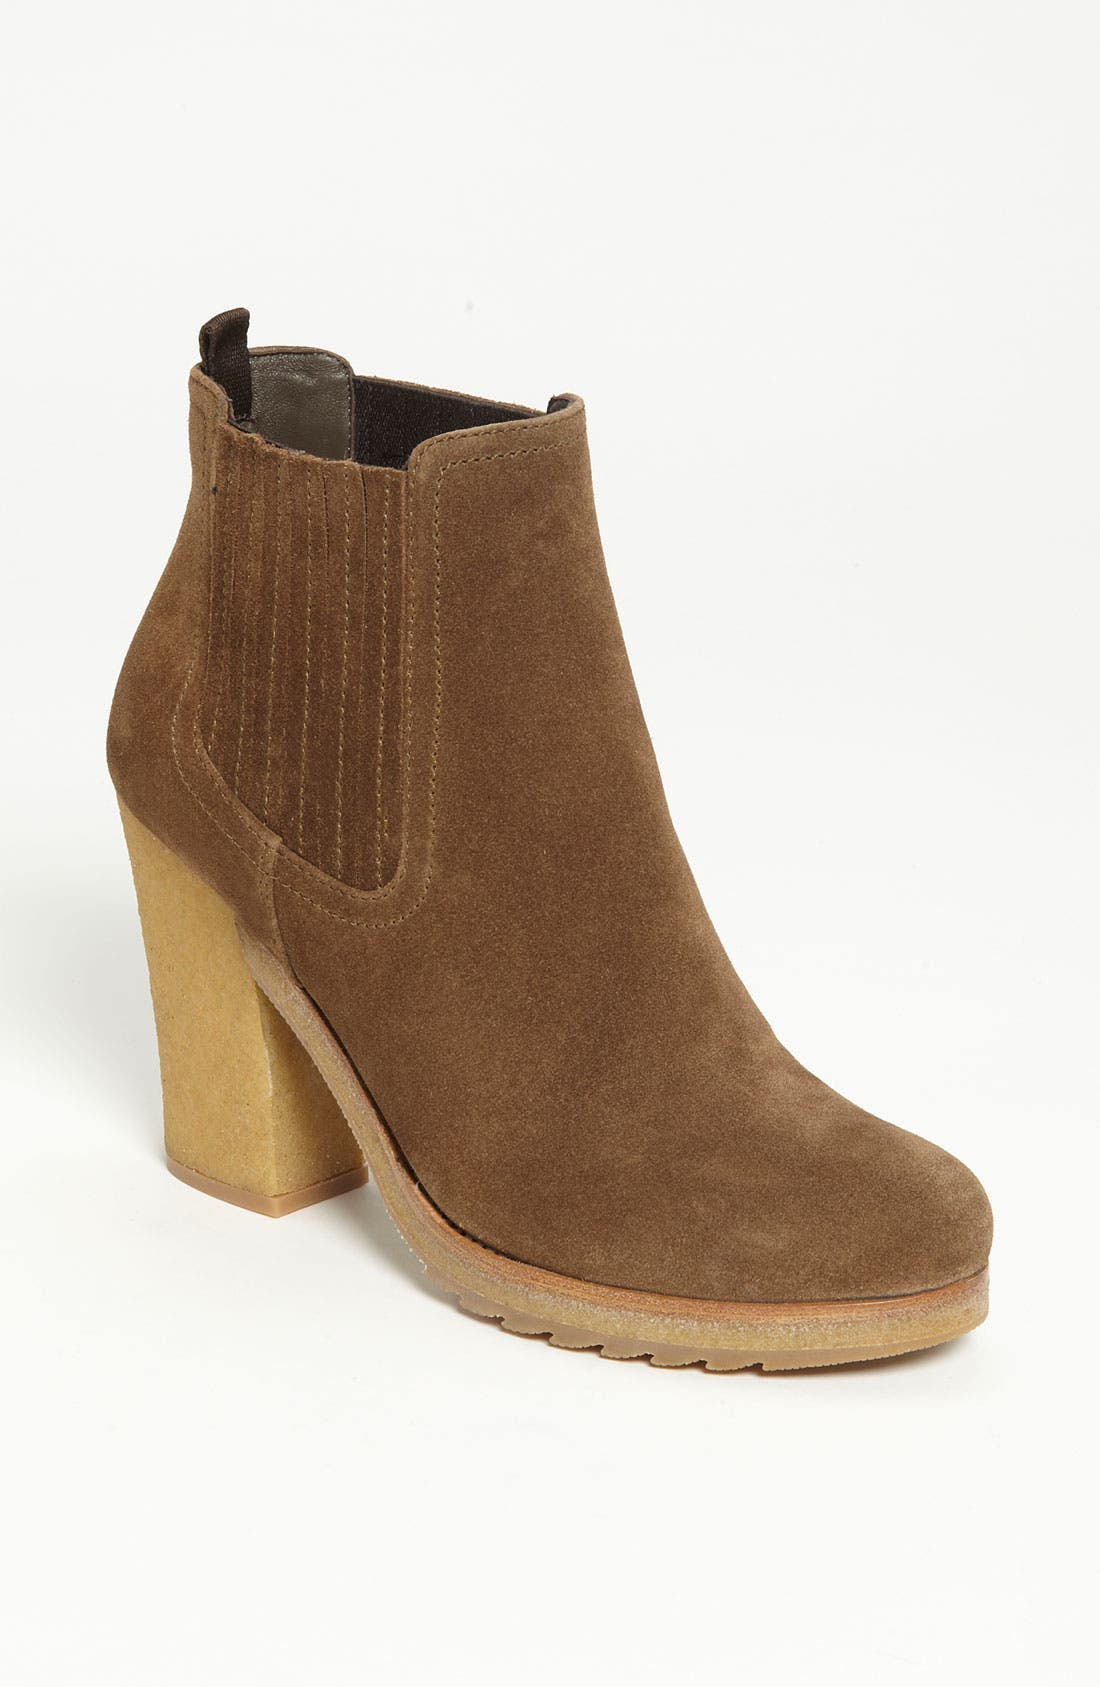 Main Image - Prada Double Gored Suede Boot